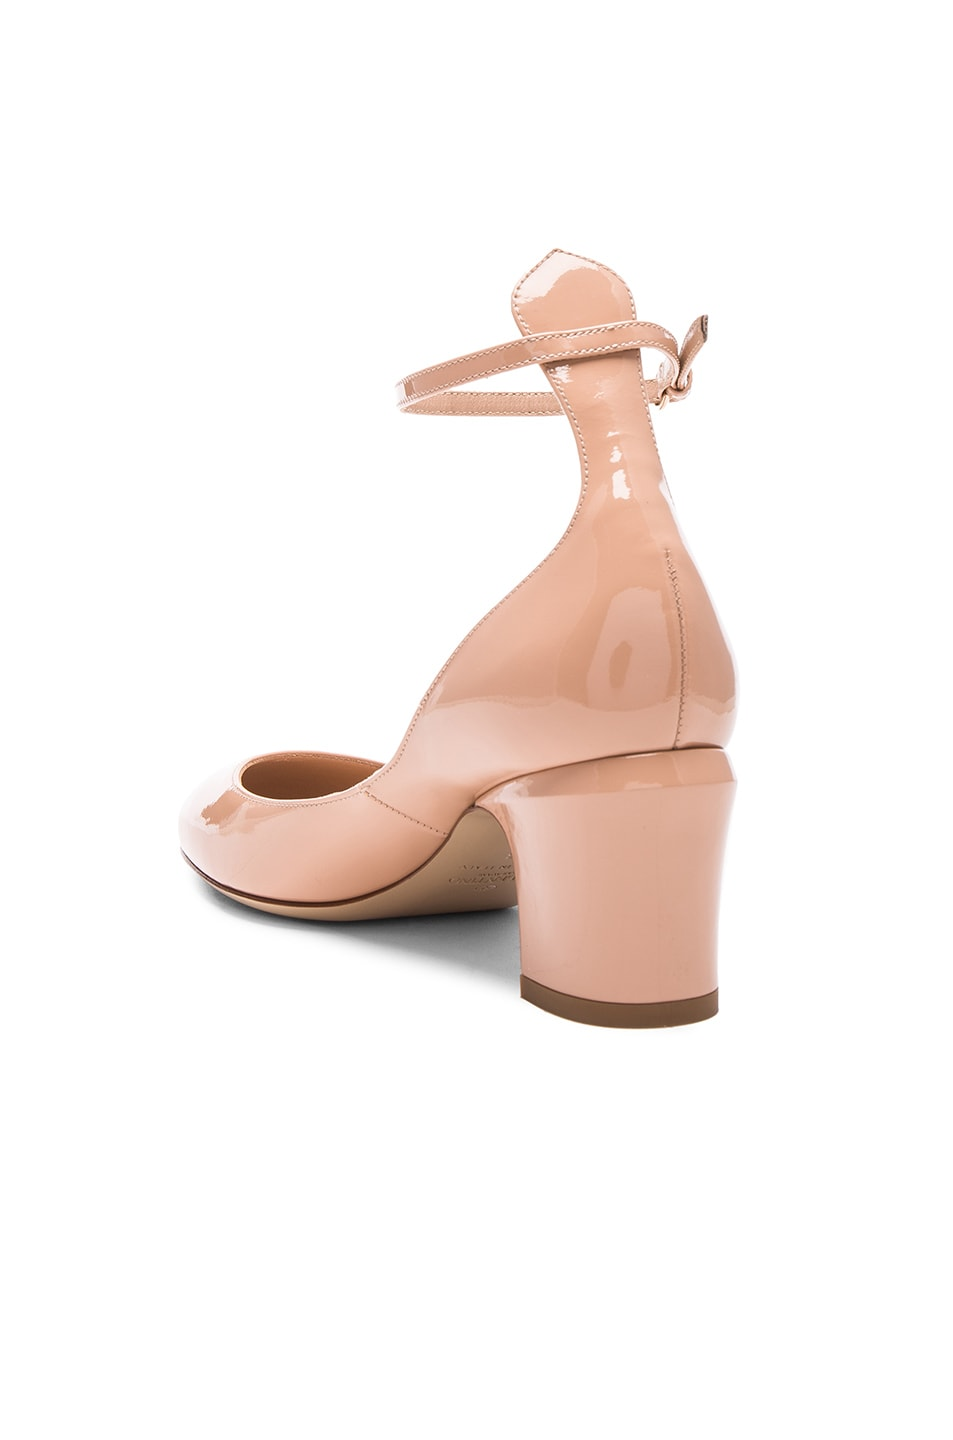 Image 3 of Valentino Patent Leather Tan-Go Pumps in Nude